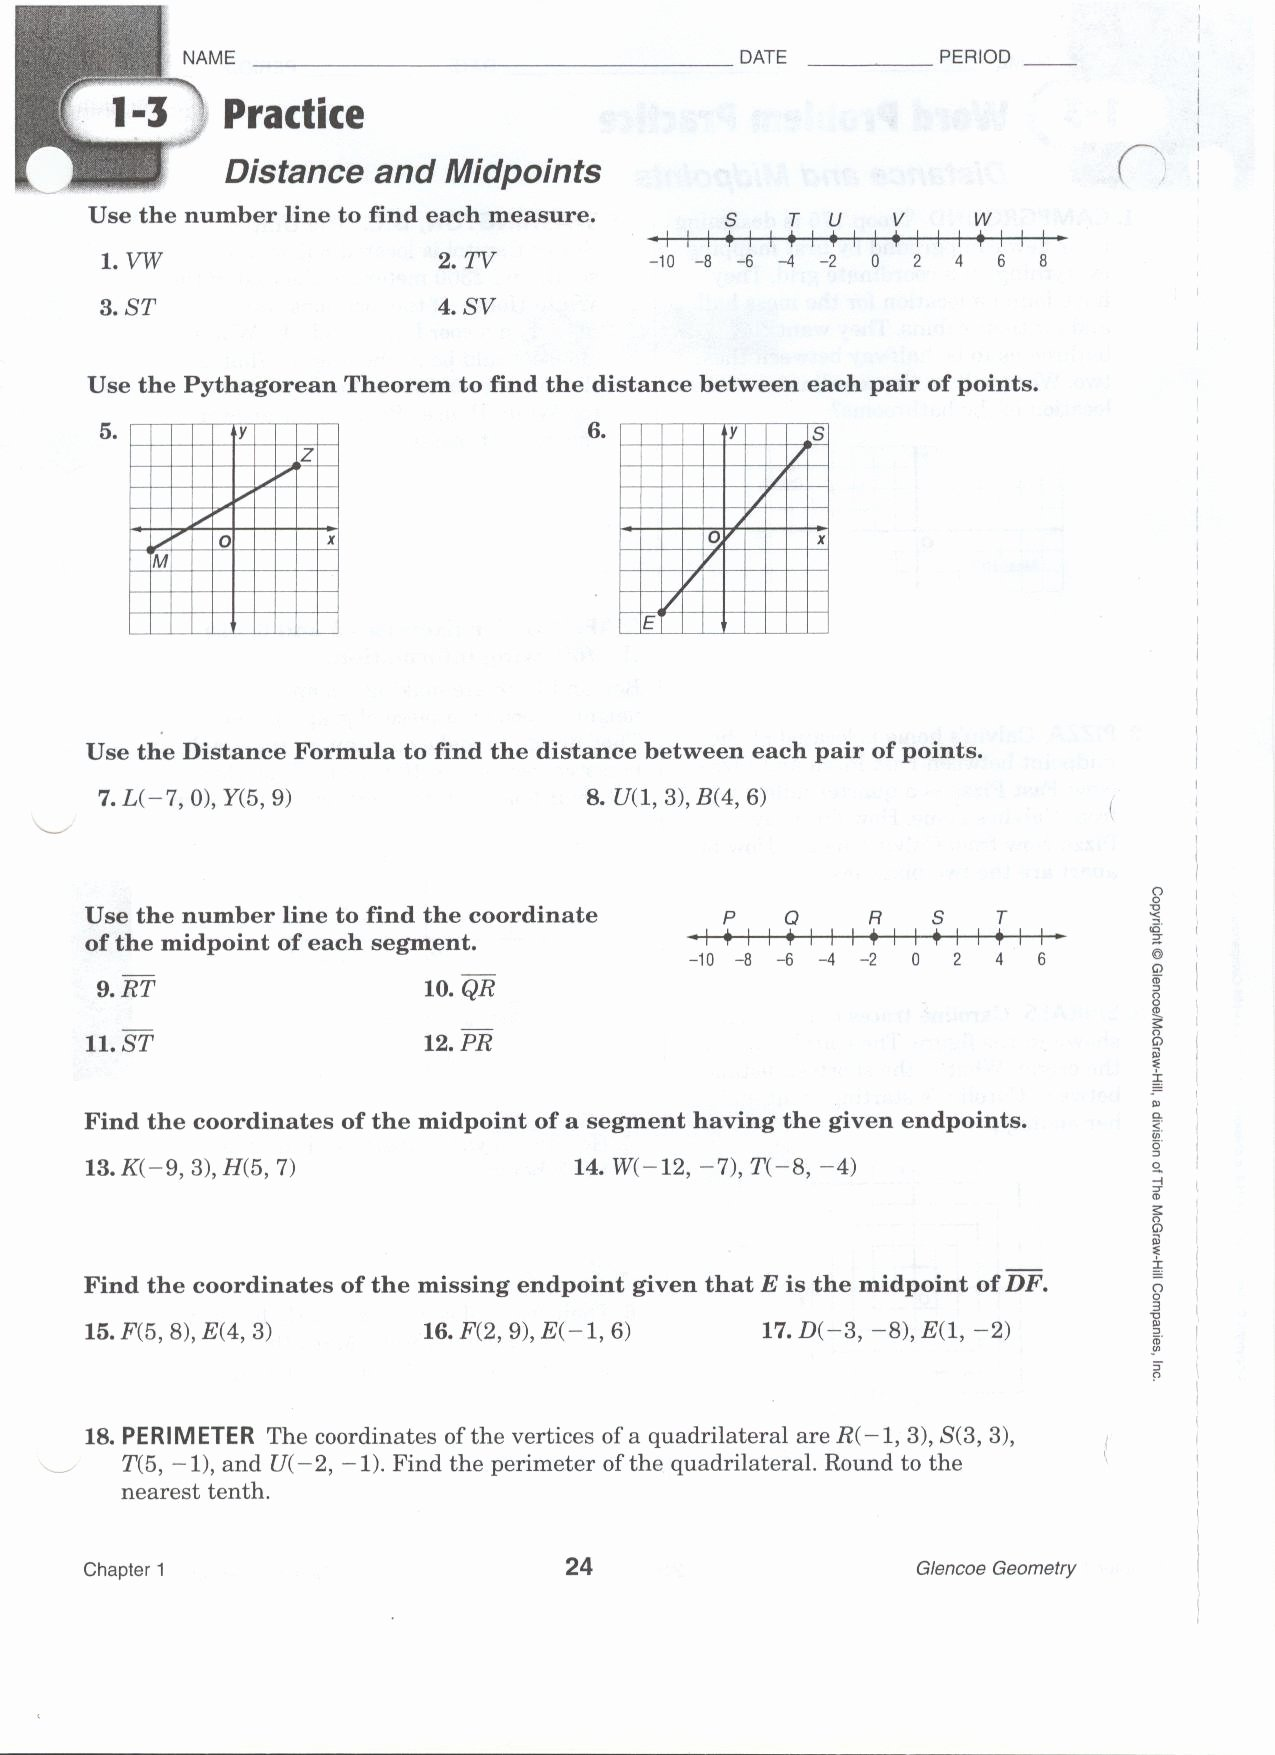 Distance and Midpoint Worksheet Answers Printable 29 Geometry Distance and Midpoint Worksheet Answers